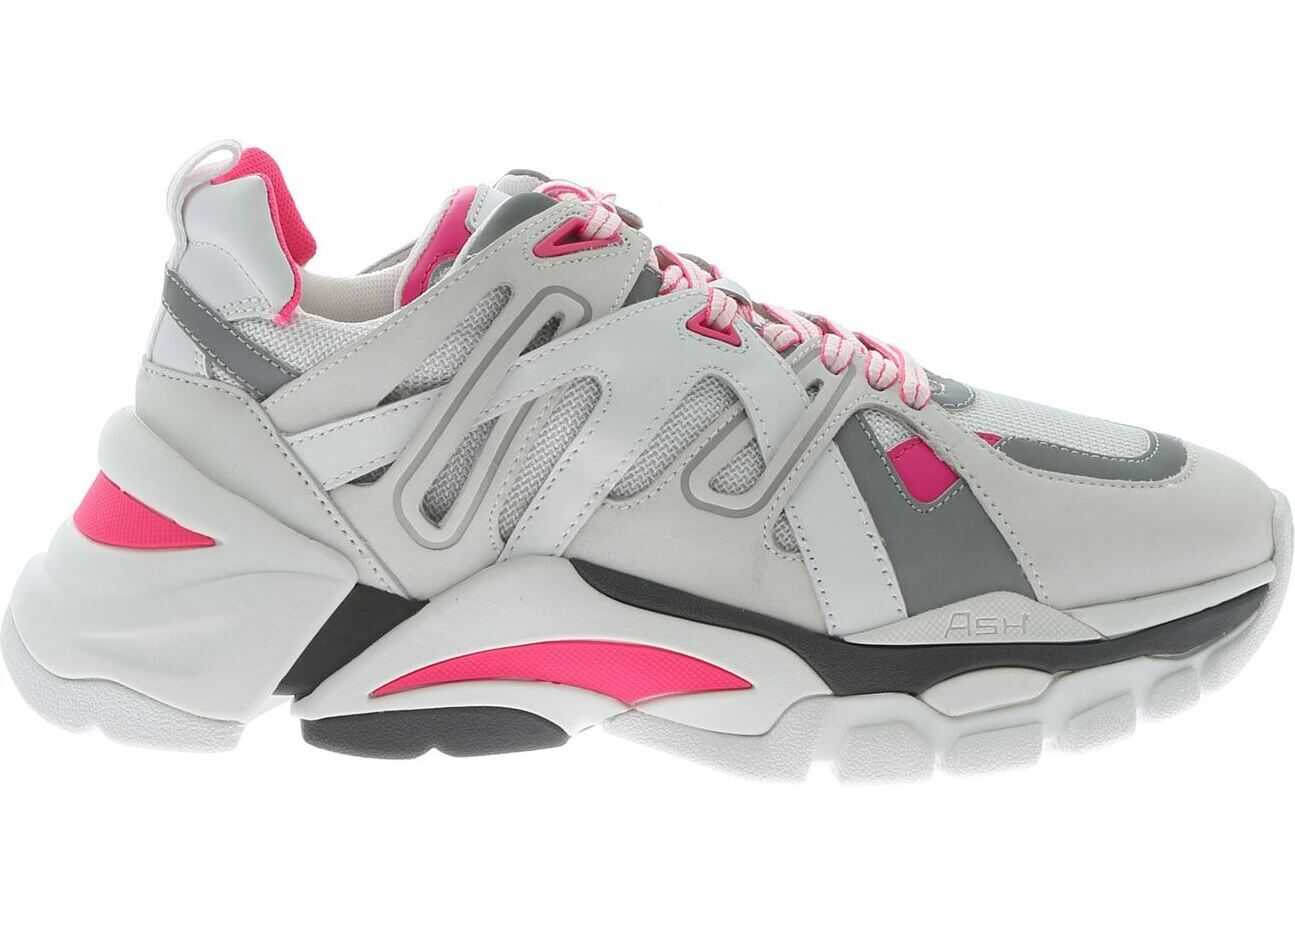 Flash Sneakers In White And Fuchsia thumbnail